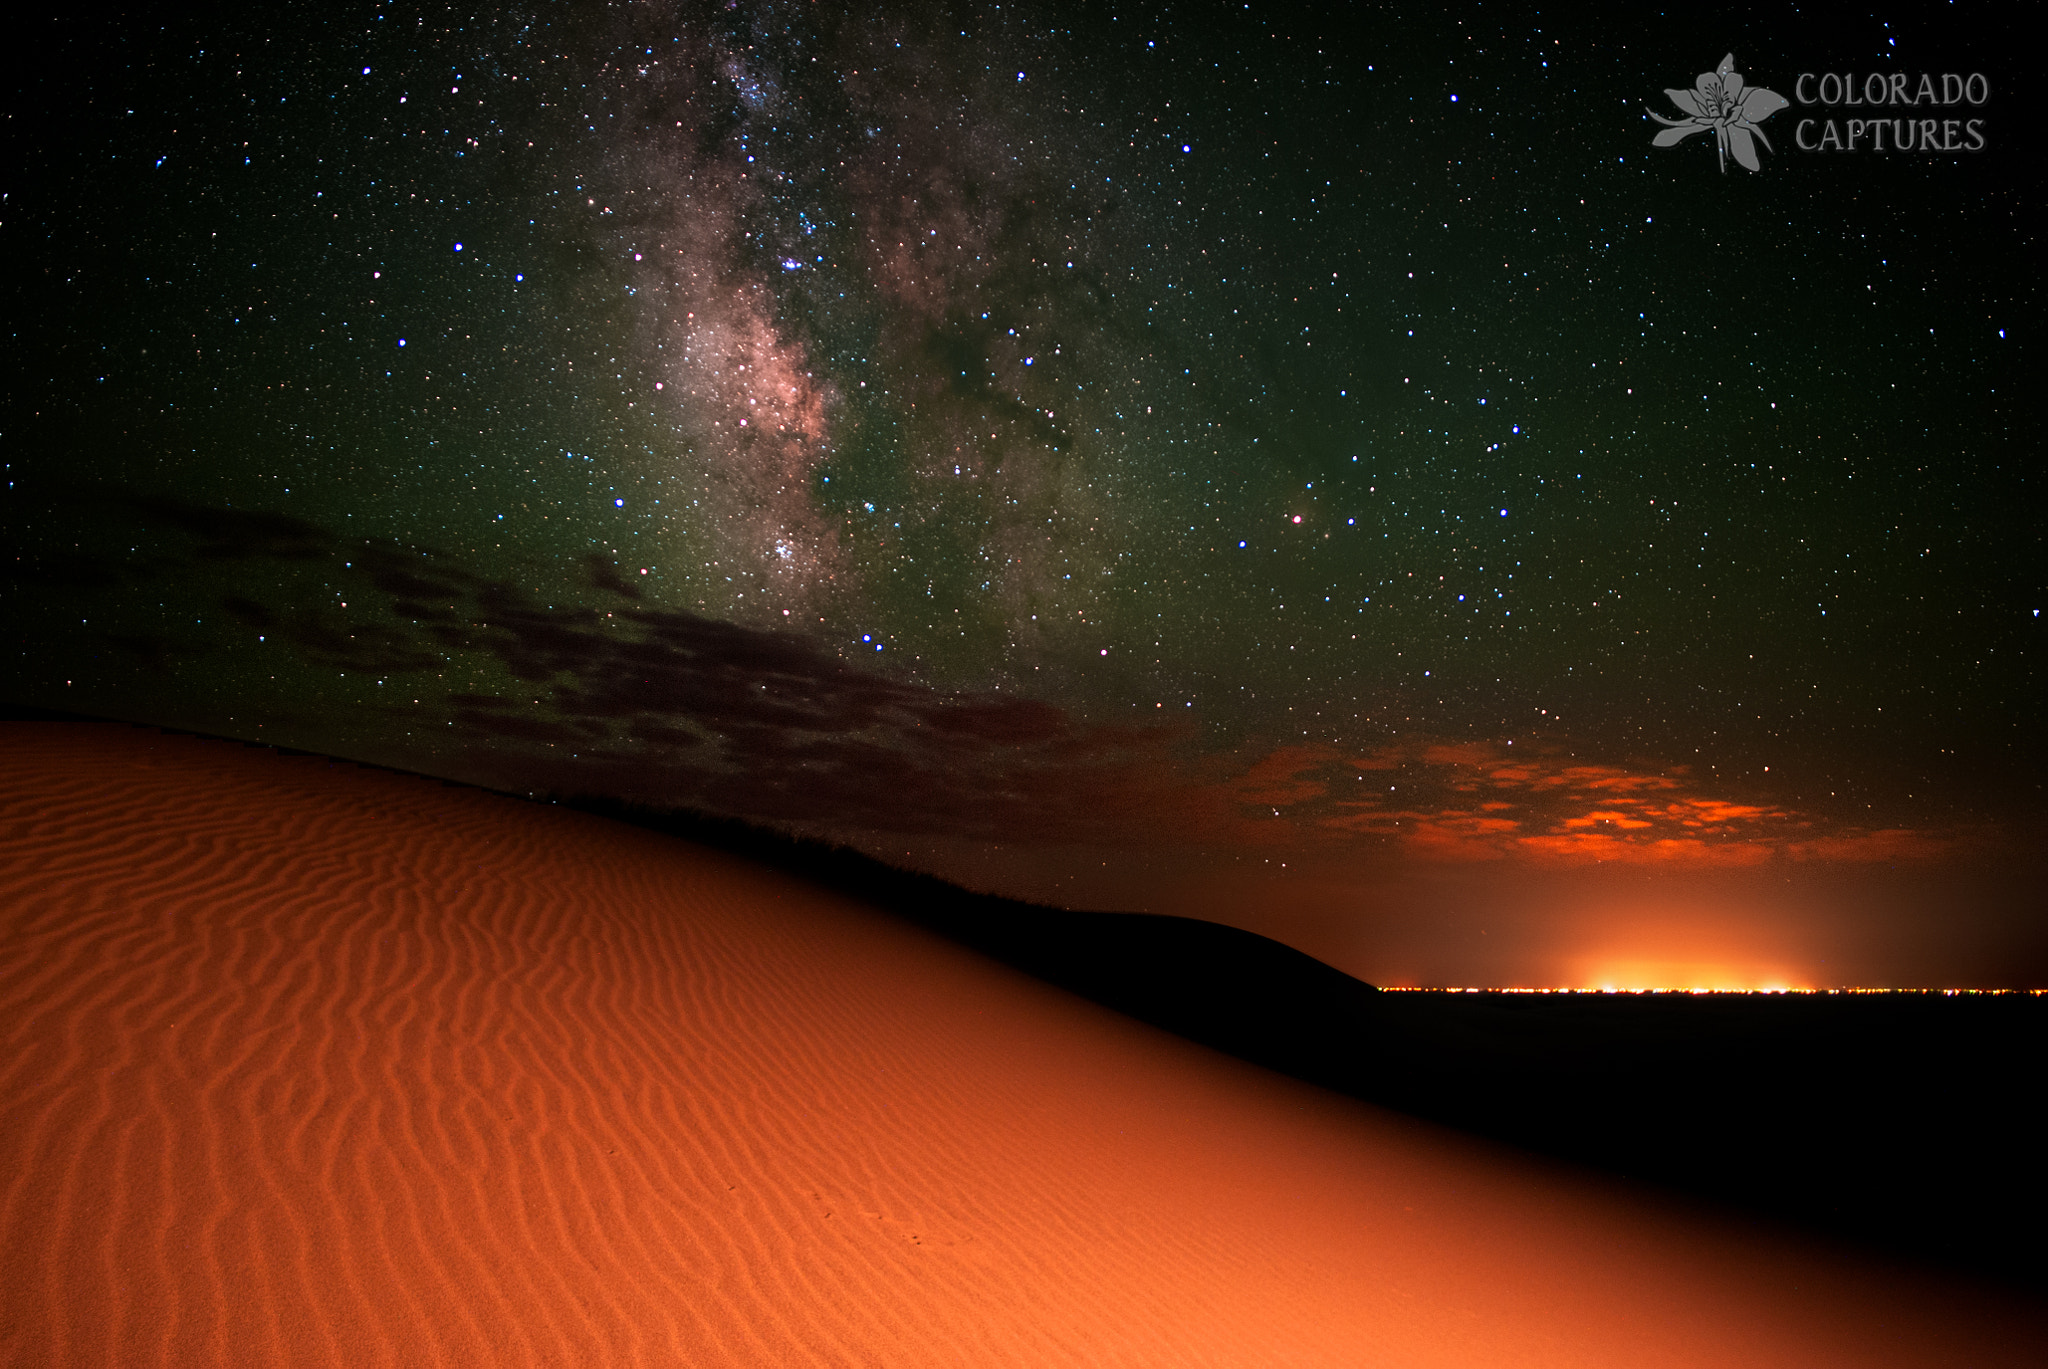 Photograph Milky Way Gold From Sand Dunes Colorado by Mike Berenson - Colorado Captures on 500px